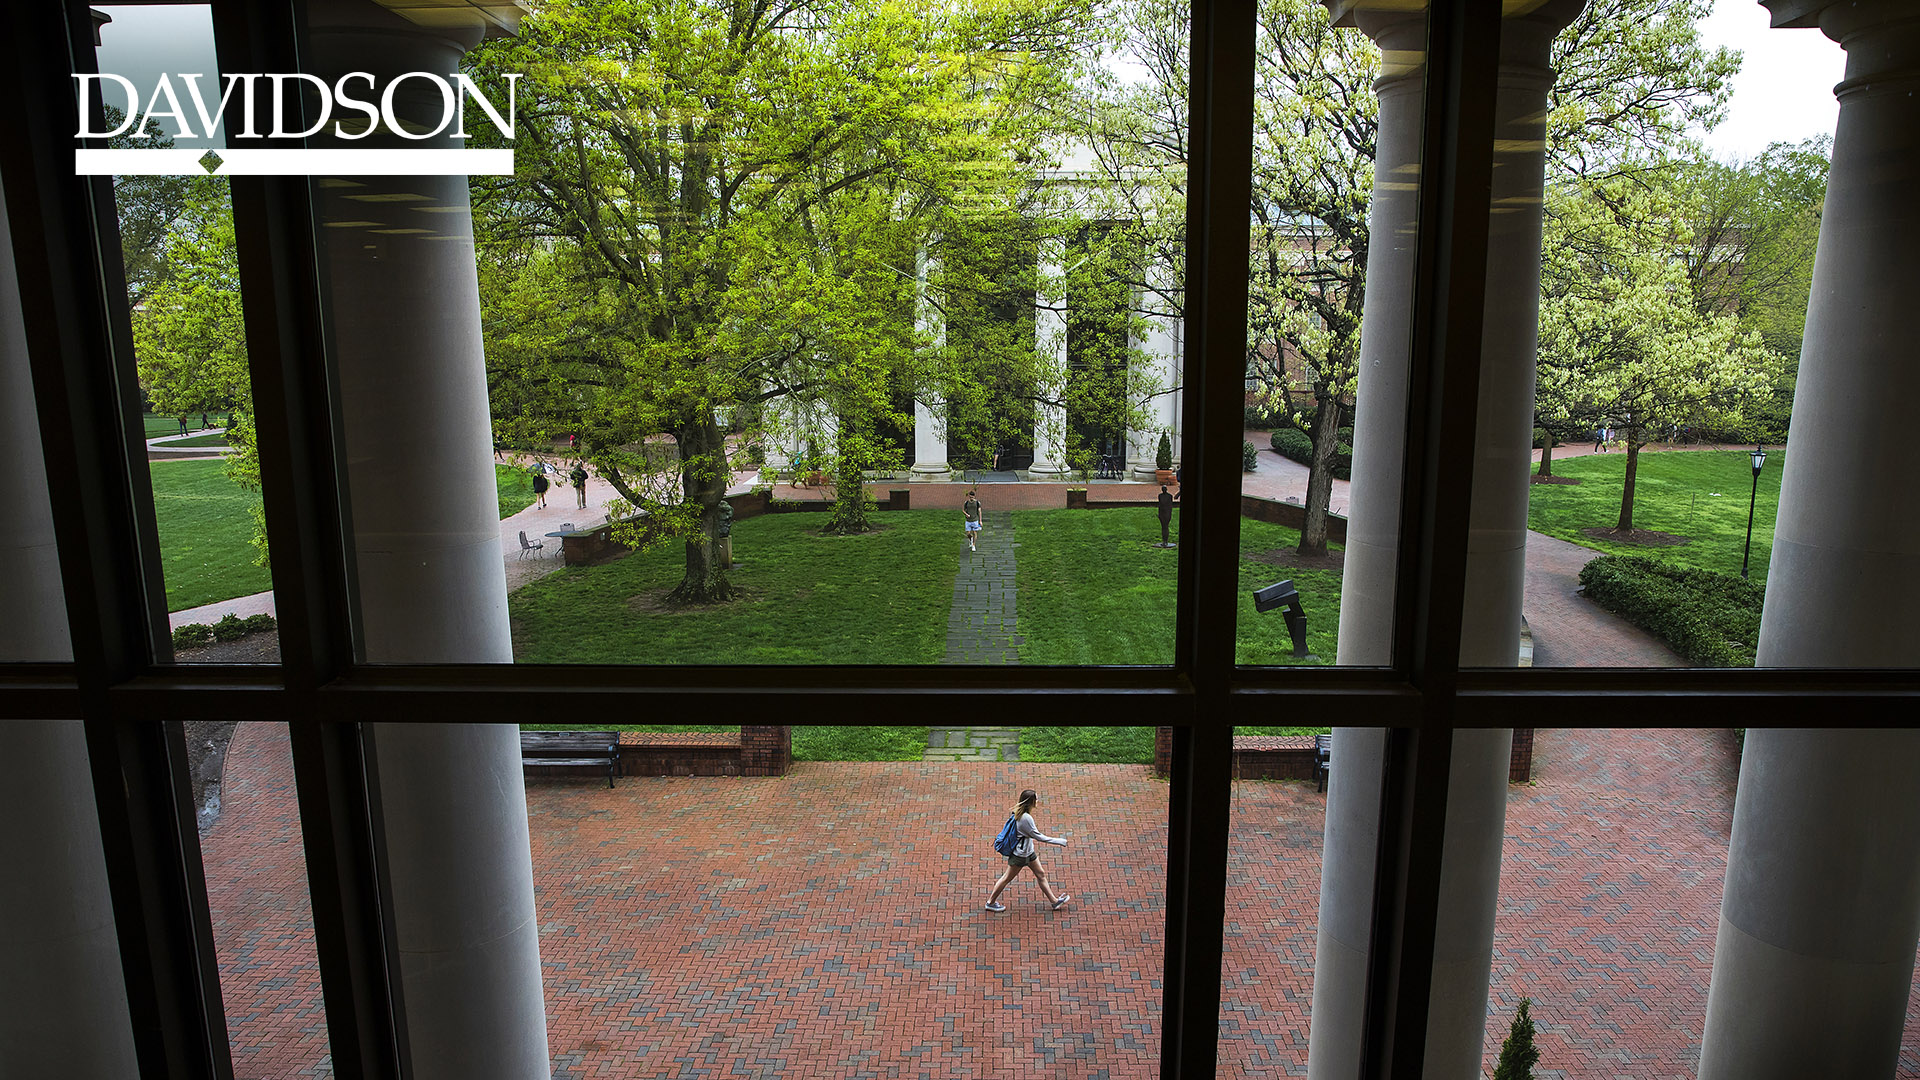 View of Sculpture Garden from Library with Davidson Bar and Diamond Logo